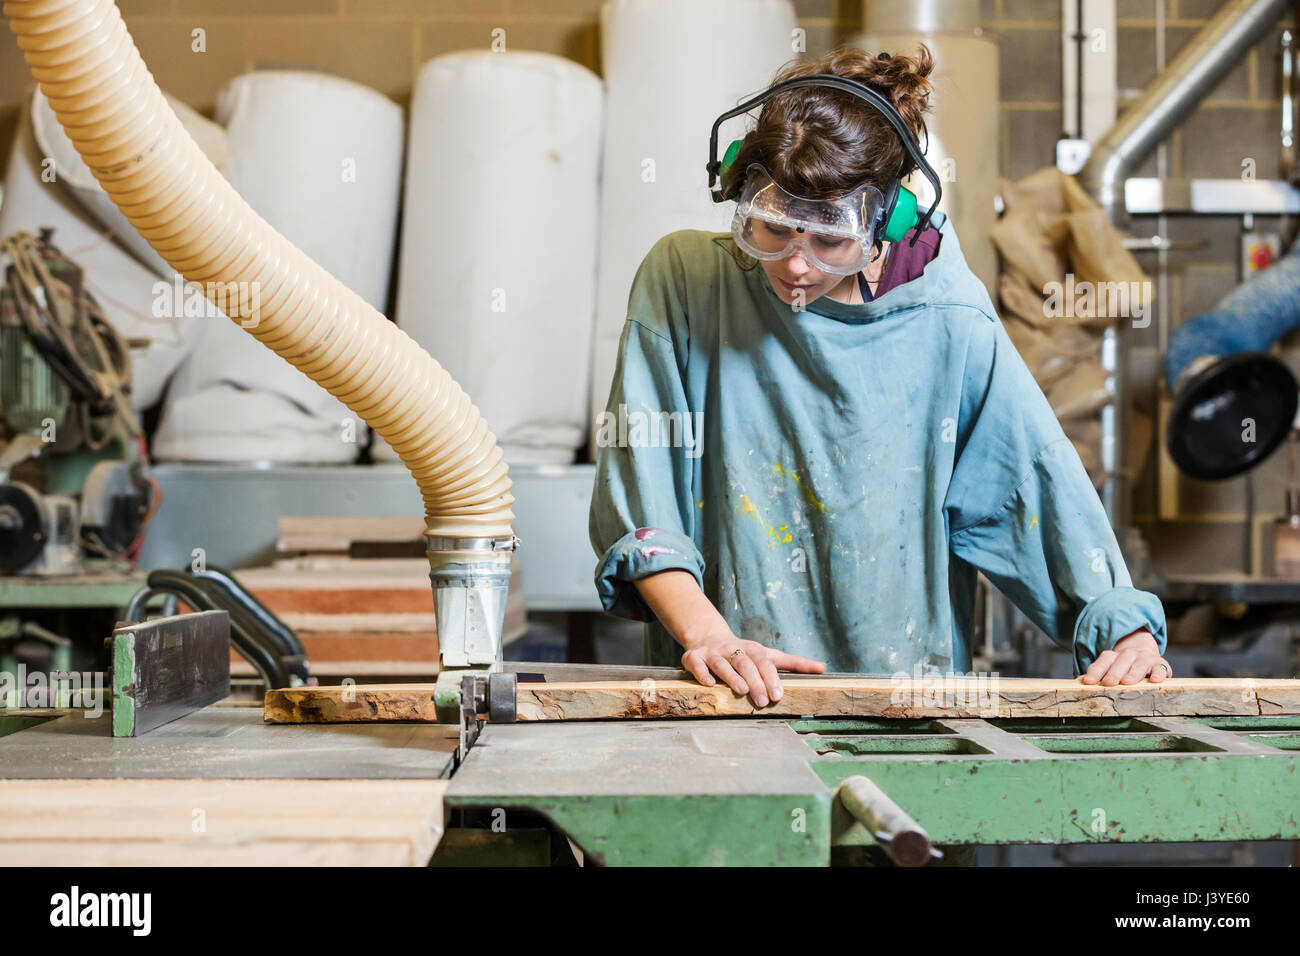 Young woman using machinery in a wood workshop - Stock Image